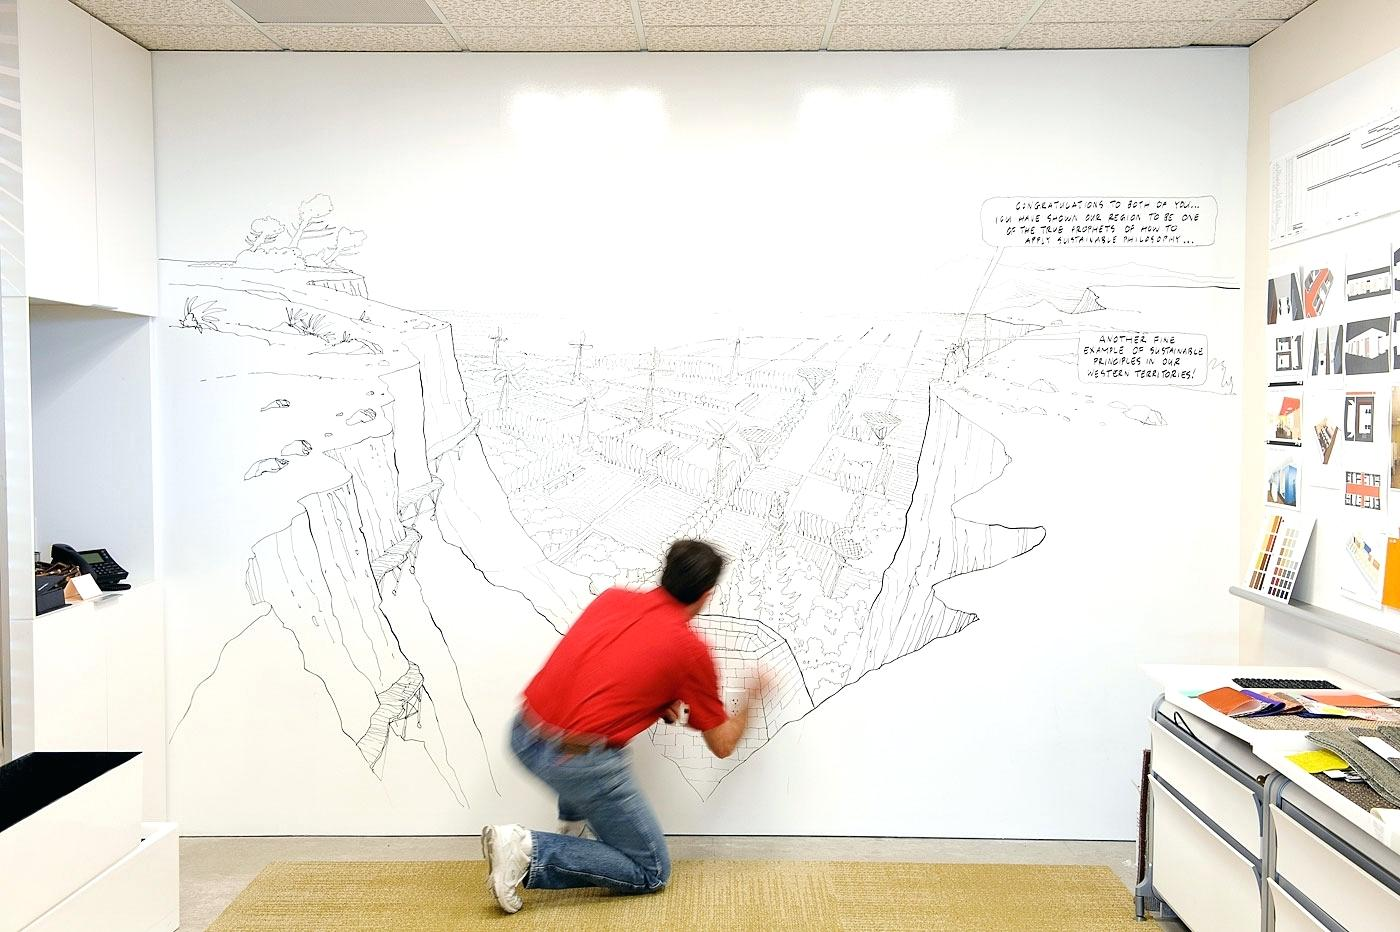 Dry erase board as the tool for Your Creativity